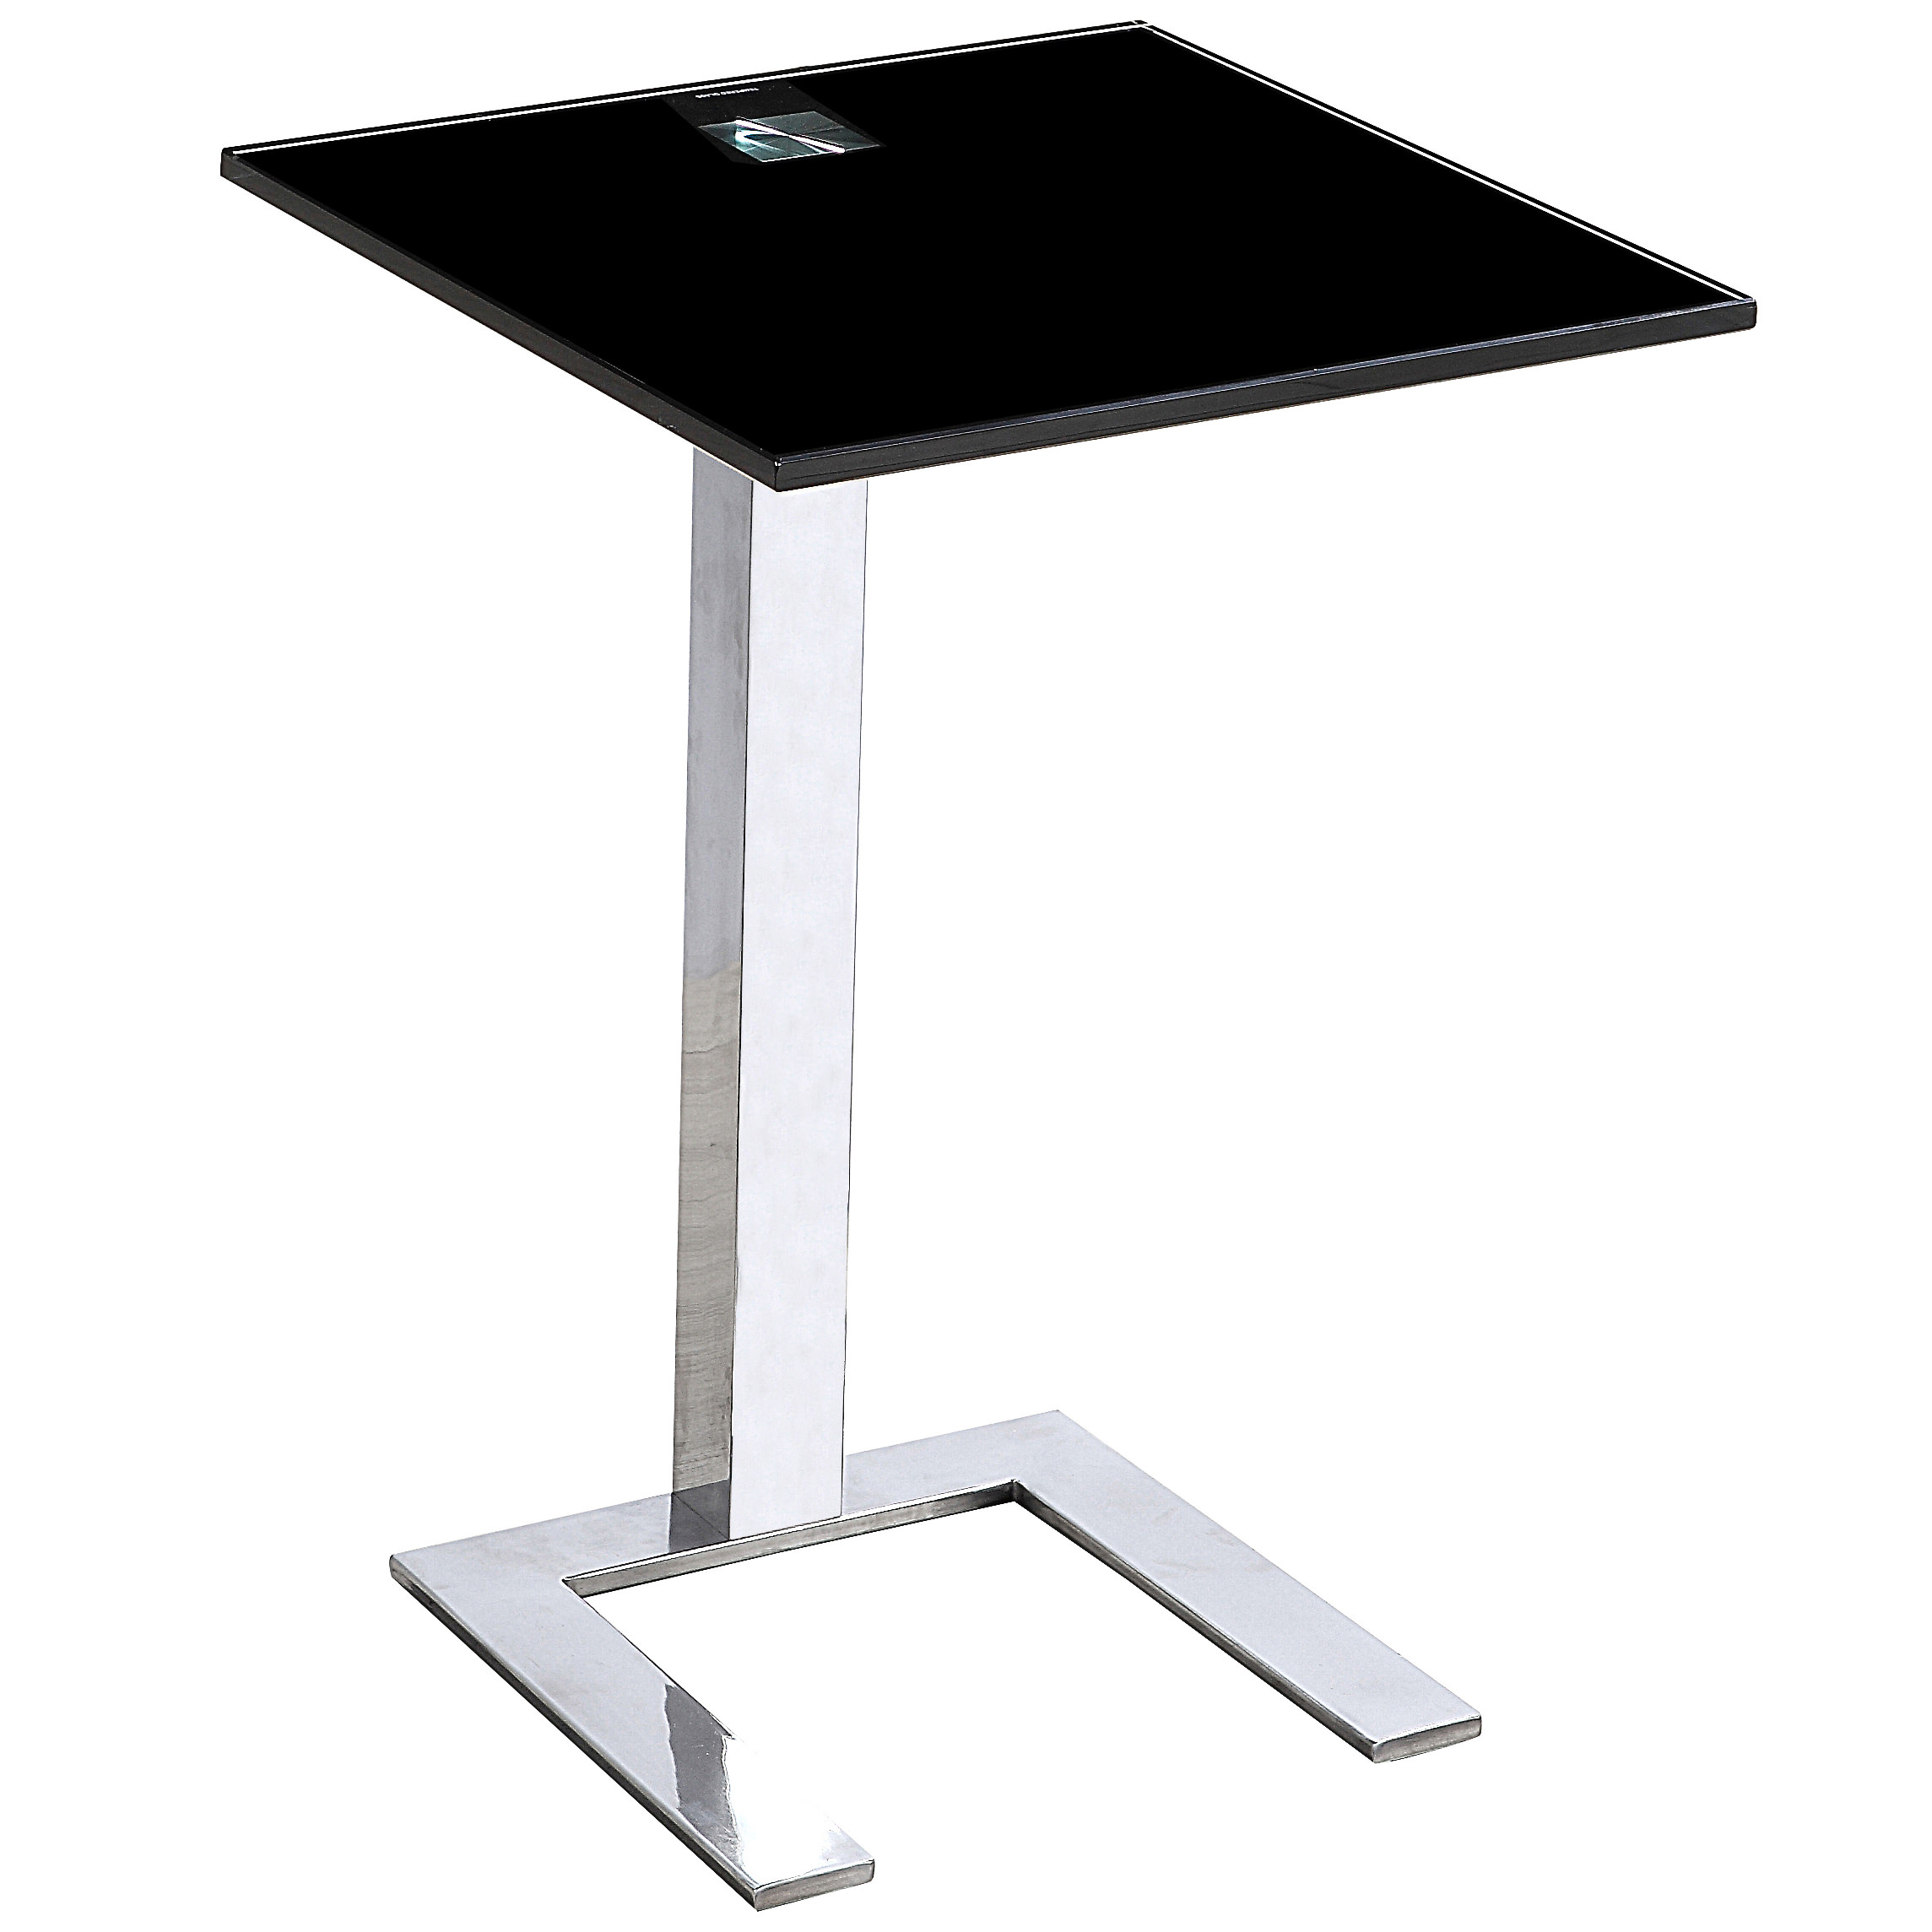 Square Glass End Tables 2x Chrome Metal And Glass End Lamp Small Square Side Table